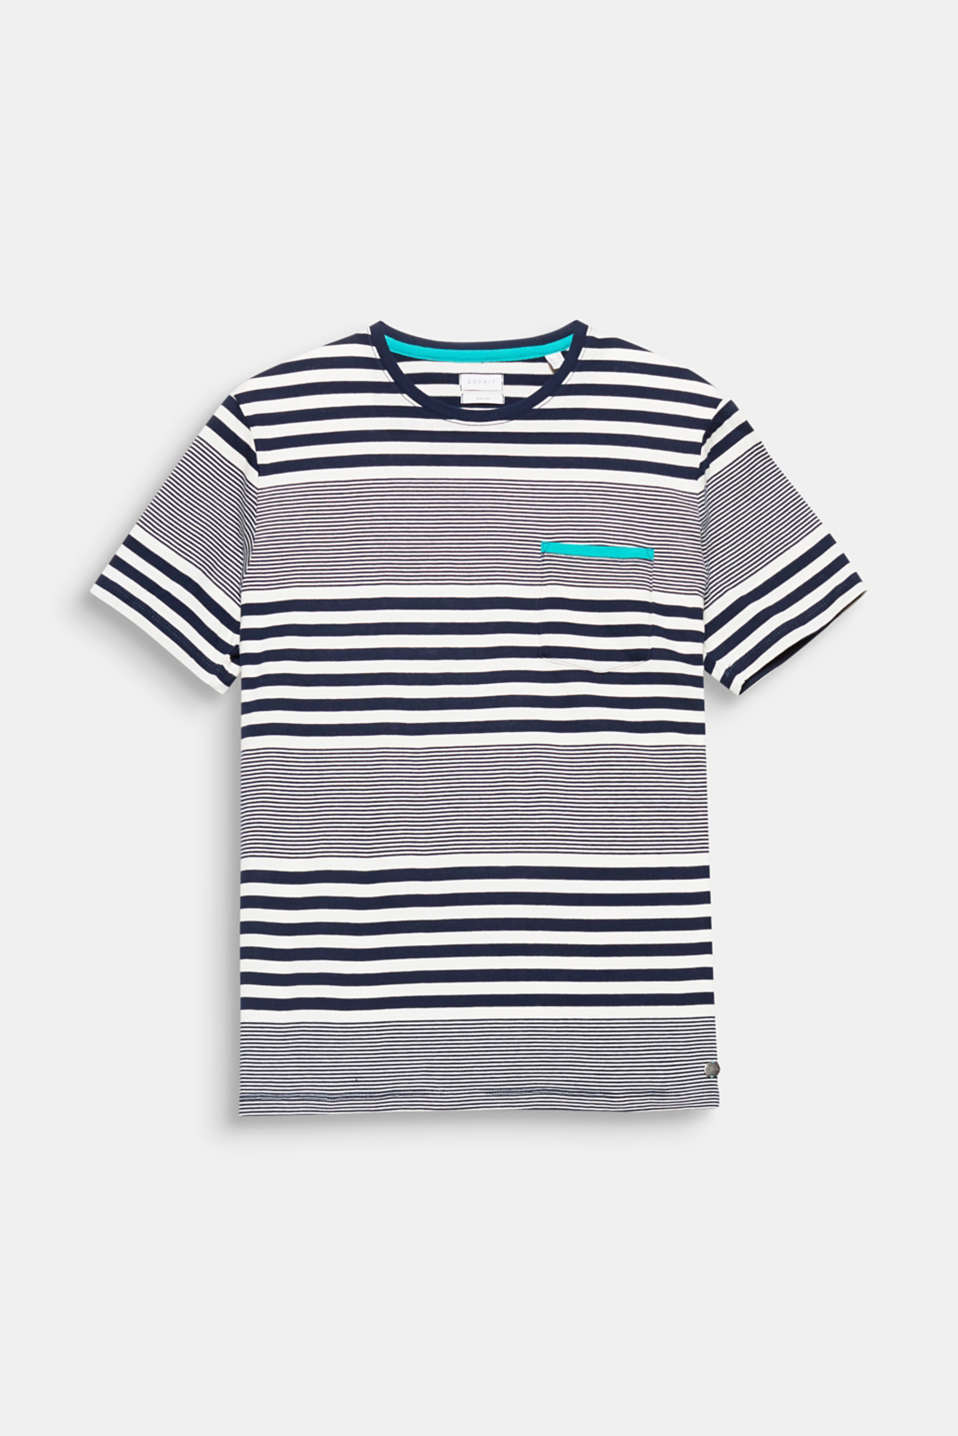 The fine hoops and nautical stripes give this pure cotton T-shirt a distinctive sporty look.